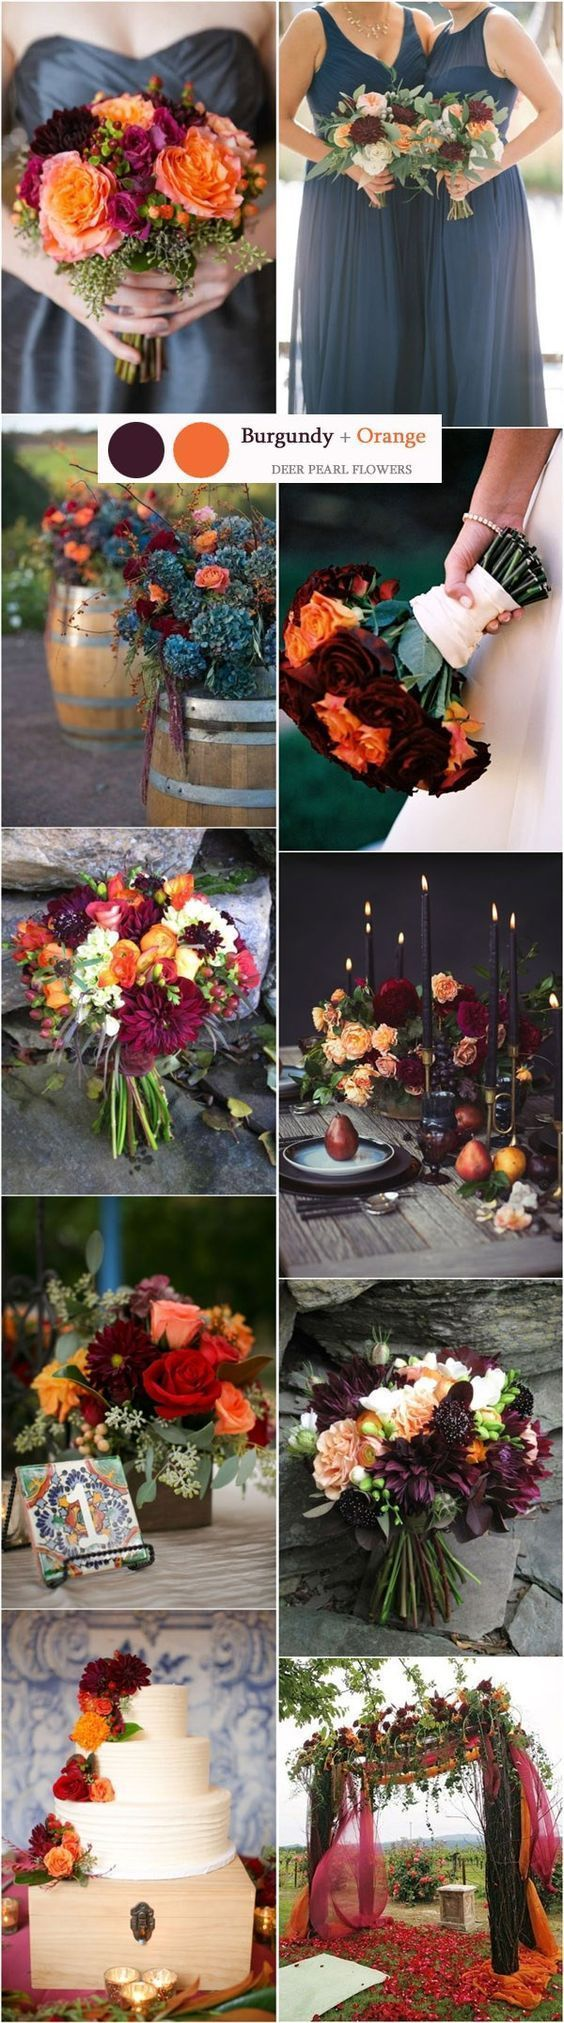 Wedding decorations at church november 2018 Top  Burgundy Wedding Color Palettes Youull Love in   Weddings